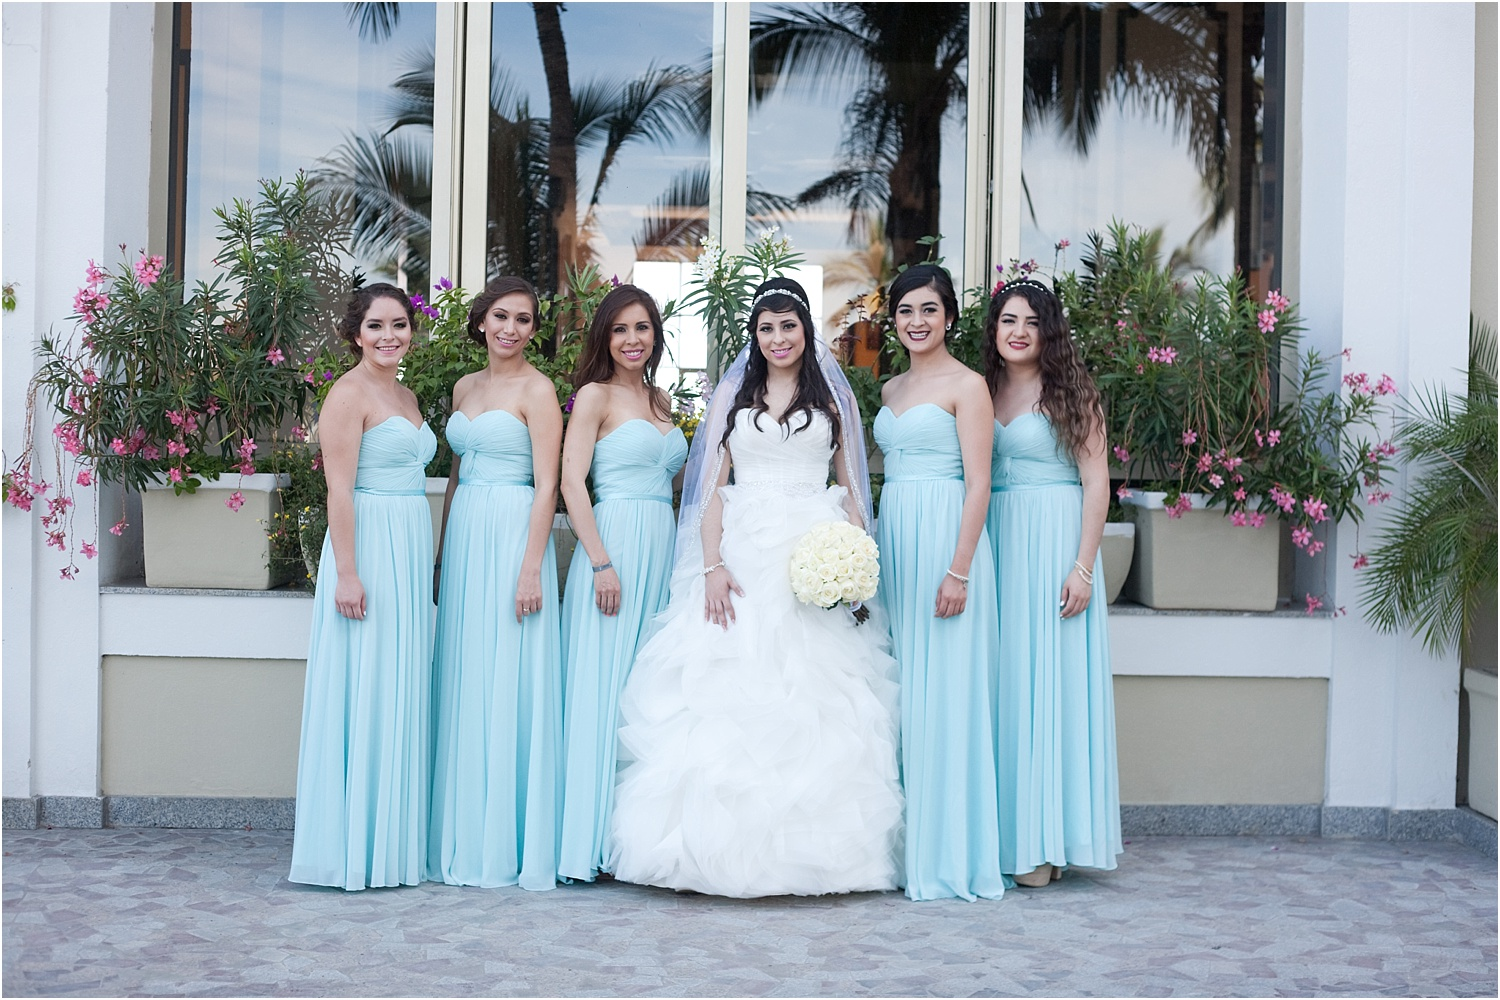 How to photograph family and bridal party portraits quickly at weddings 23